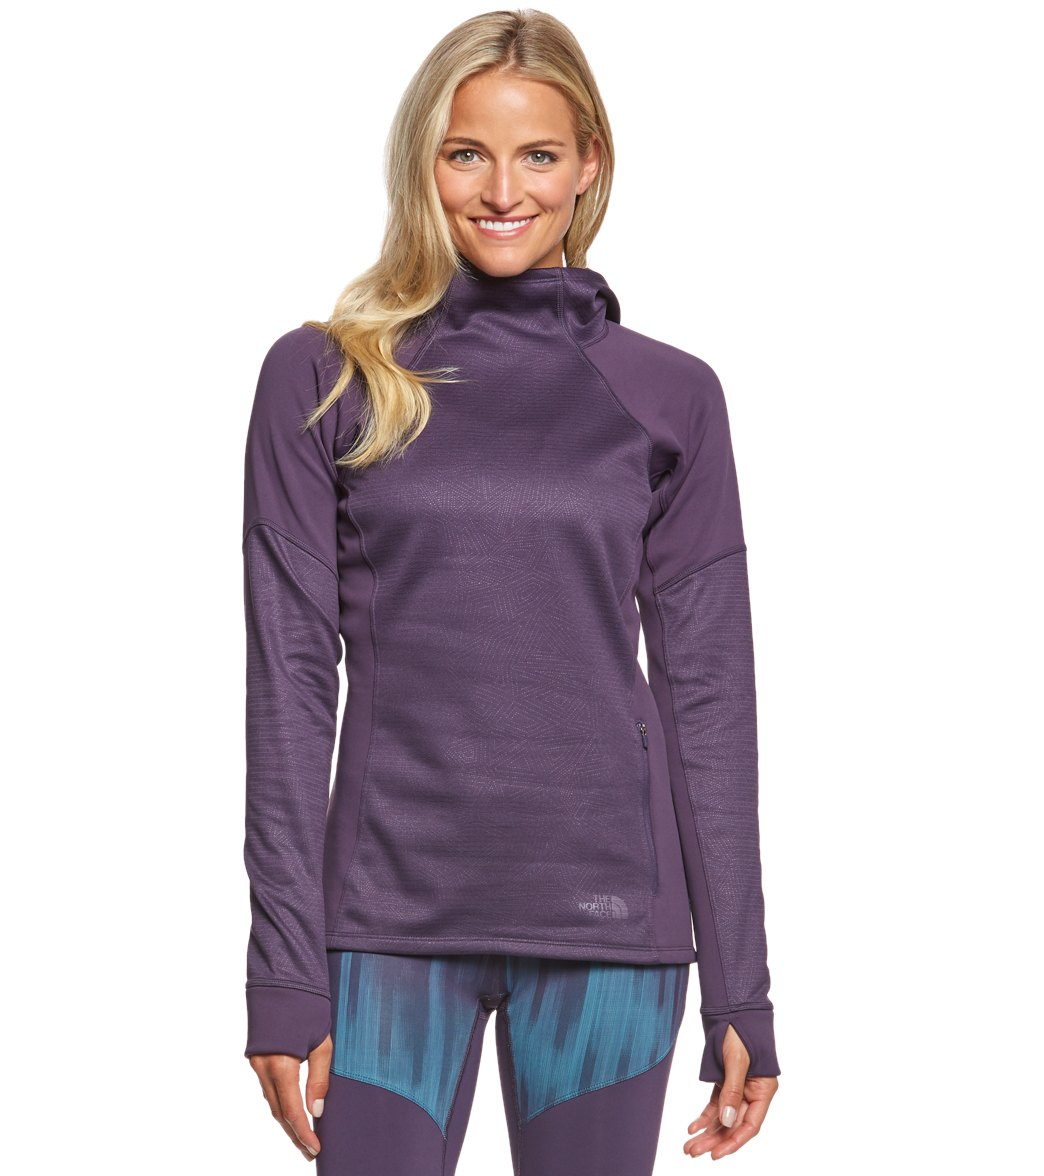 e13ef3d2c The North Face Women's Versitas Pullover Hoodie